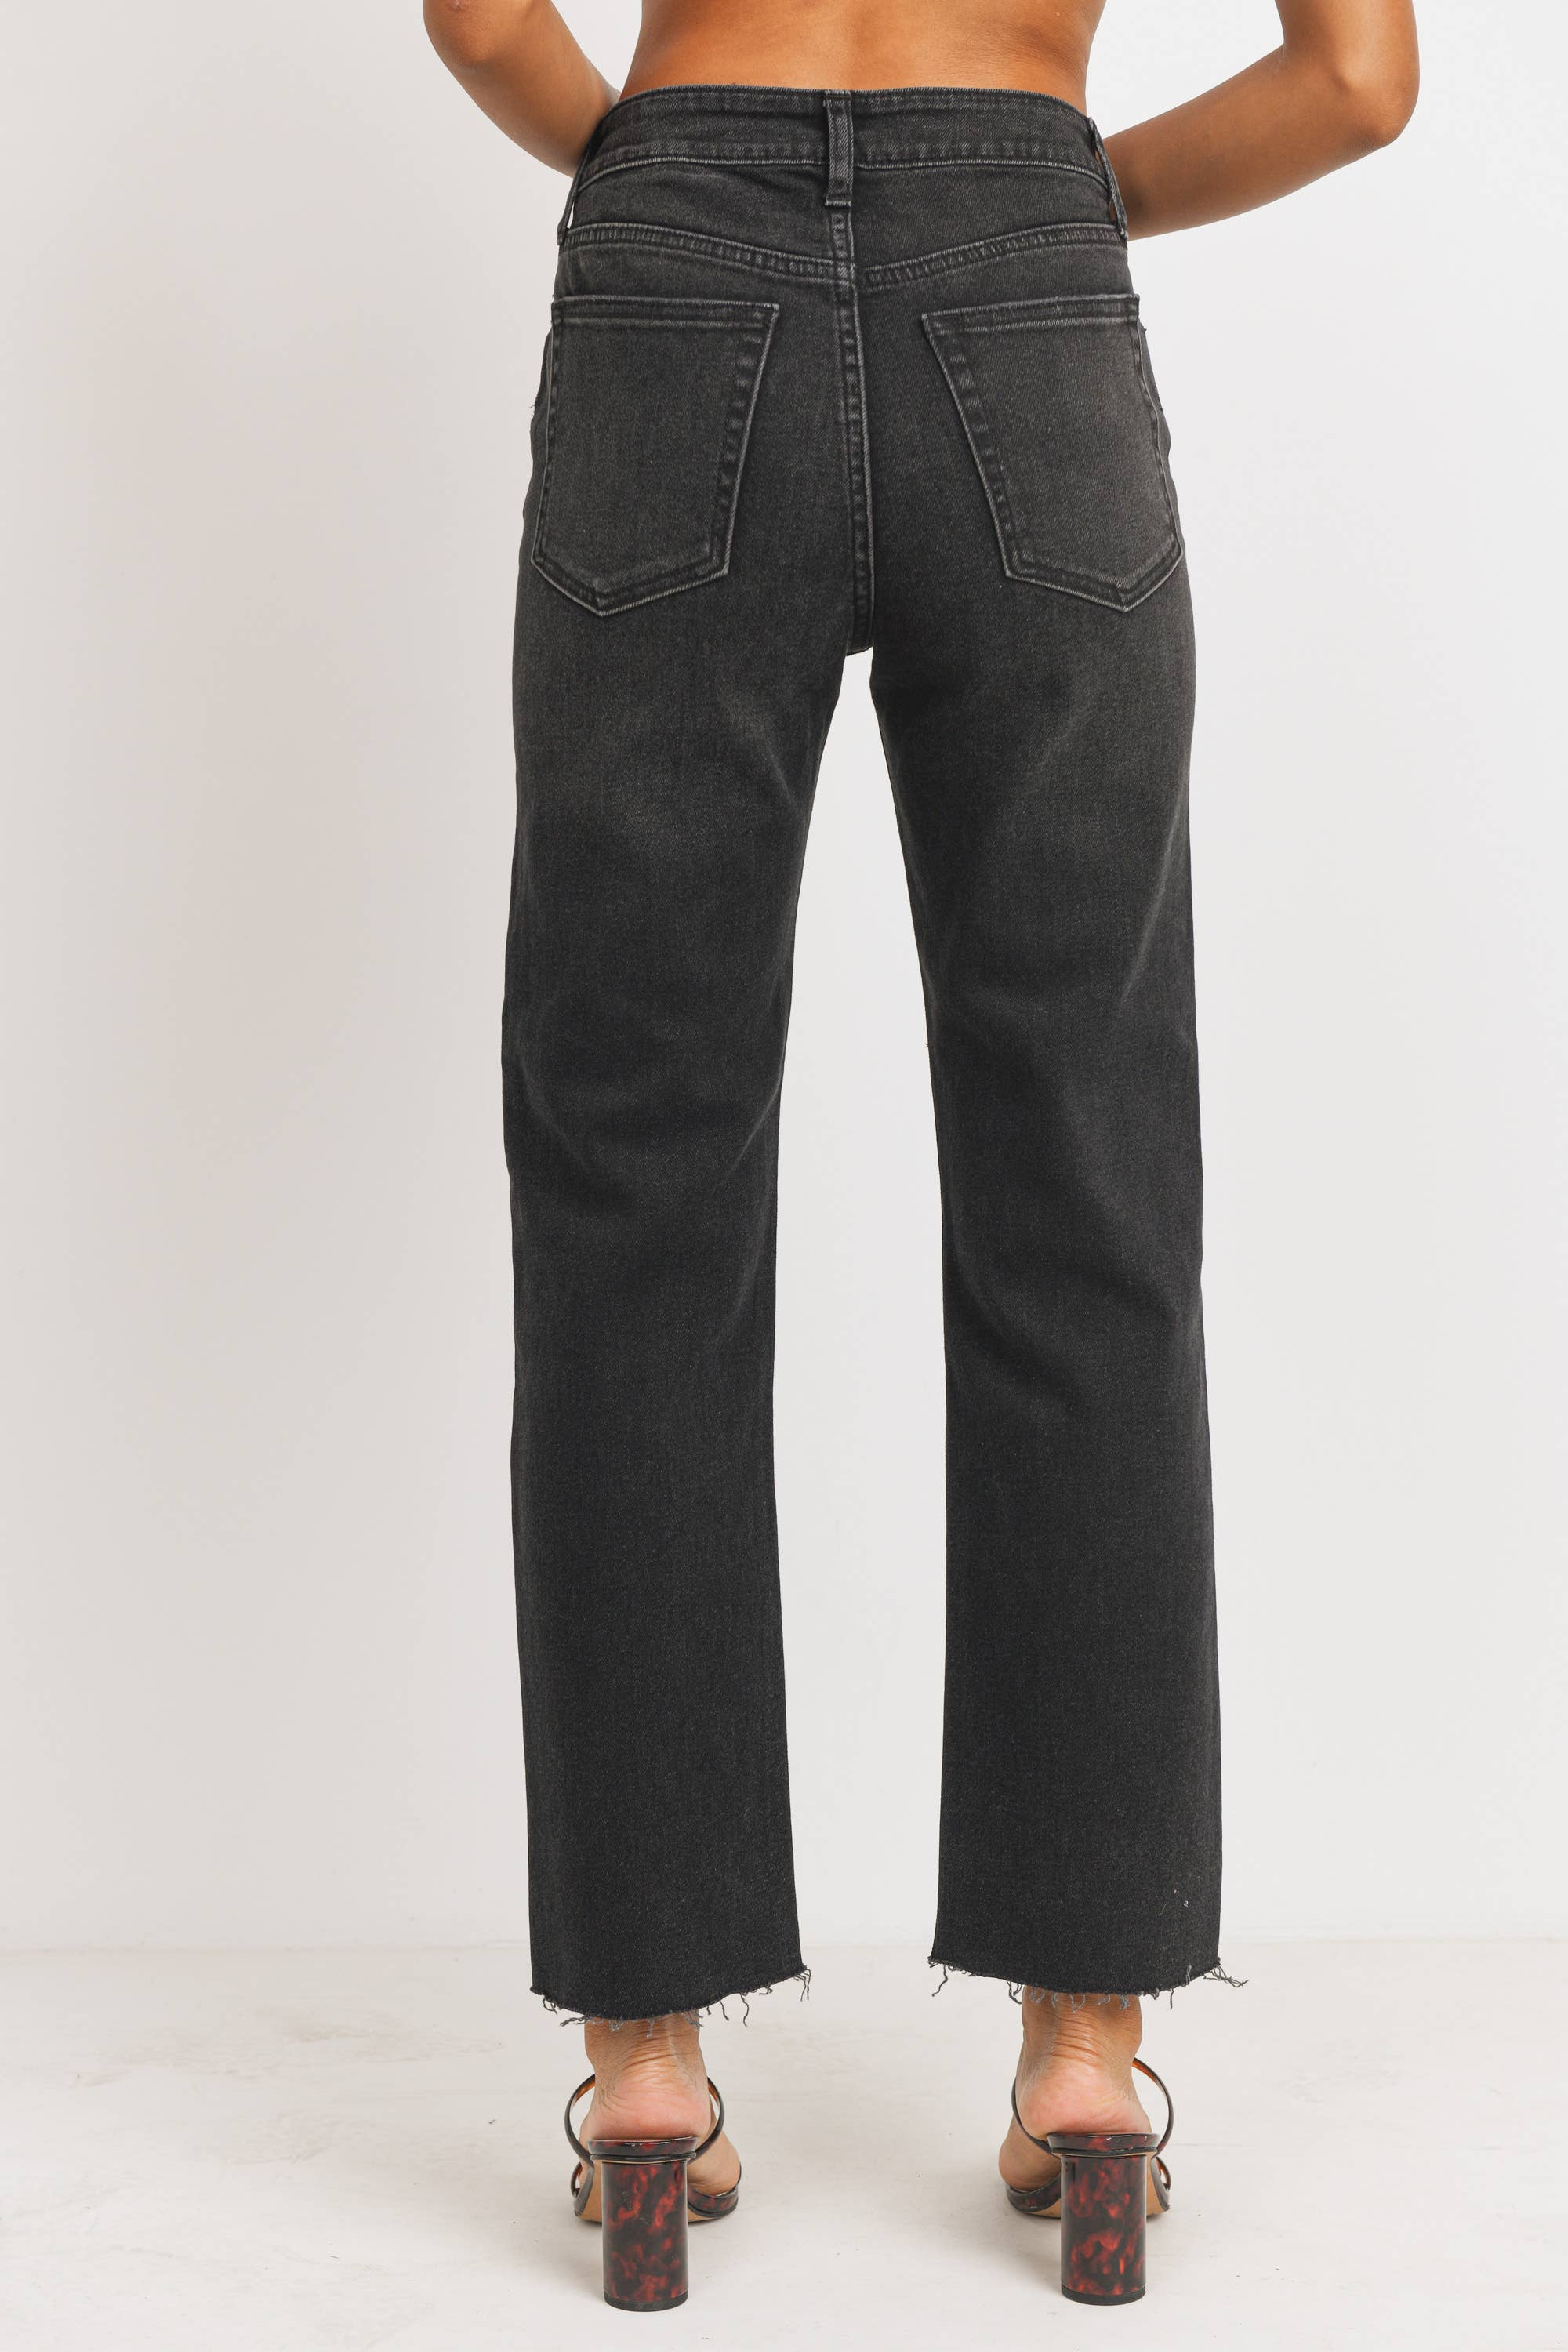 Cut Off Straight Leg Jeans - Bottom - JBD - MOD&SOUL